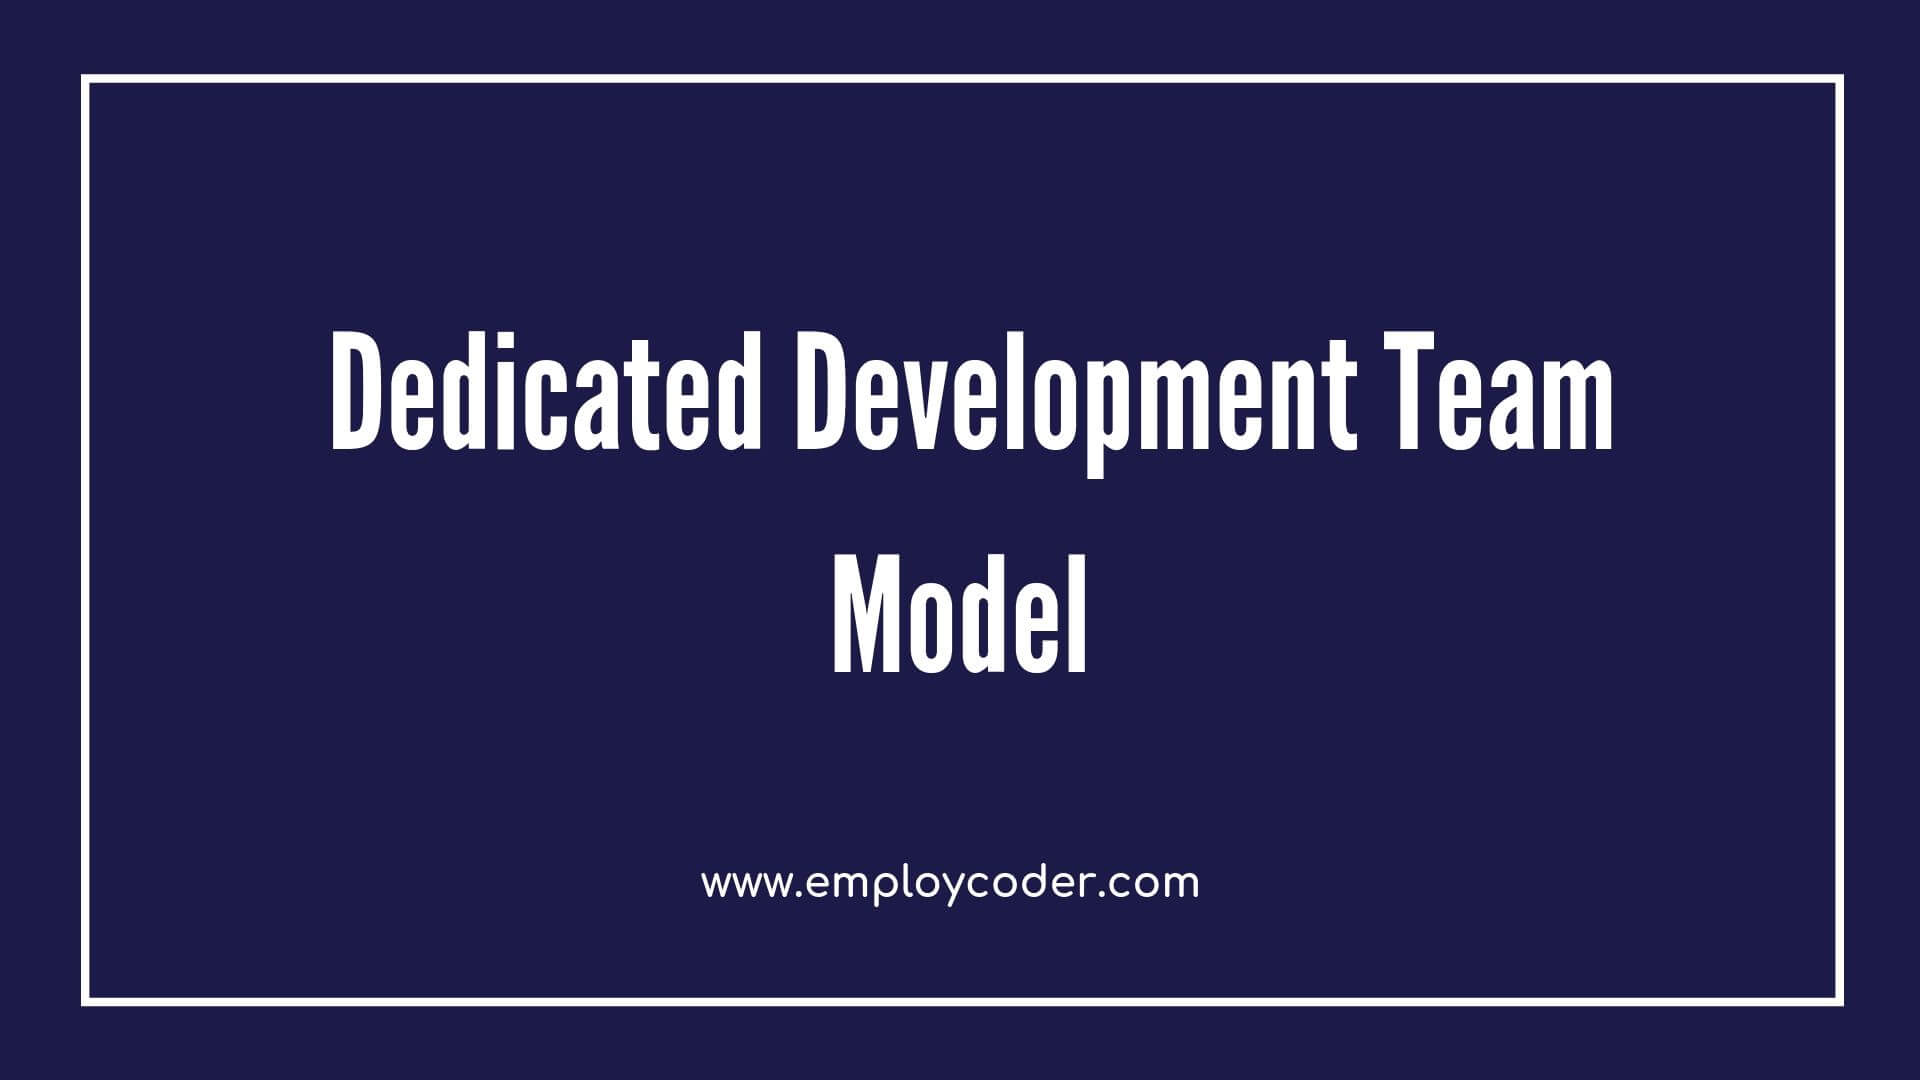 Why Hire Dedicated Development Team for your Project?